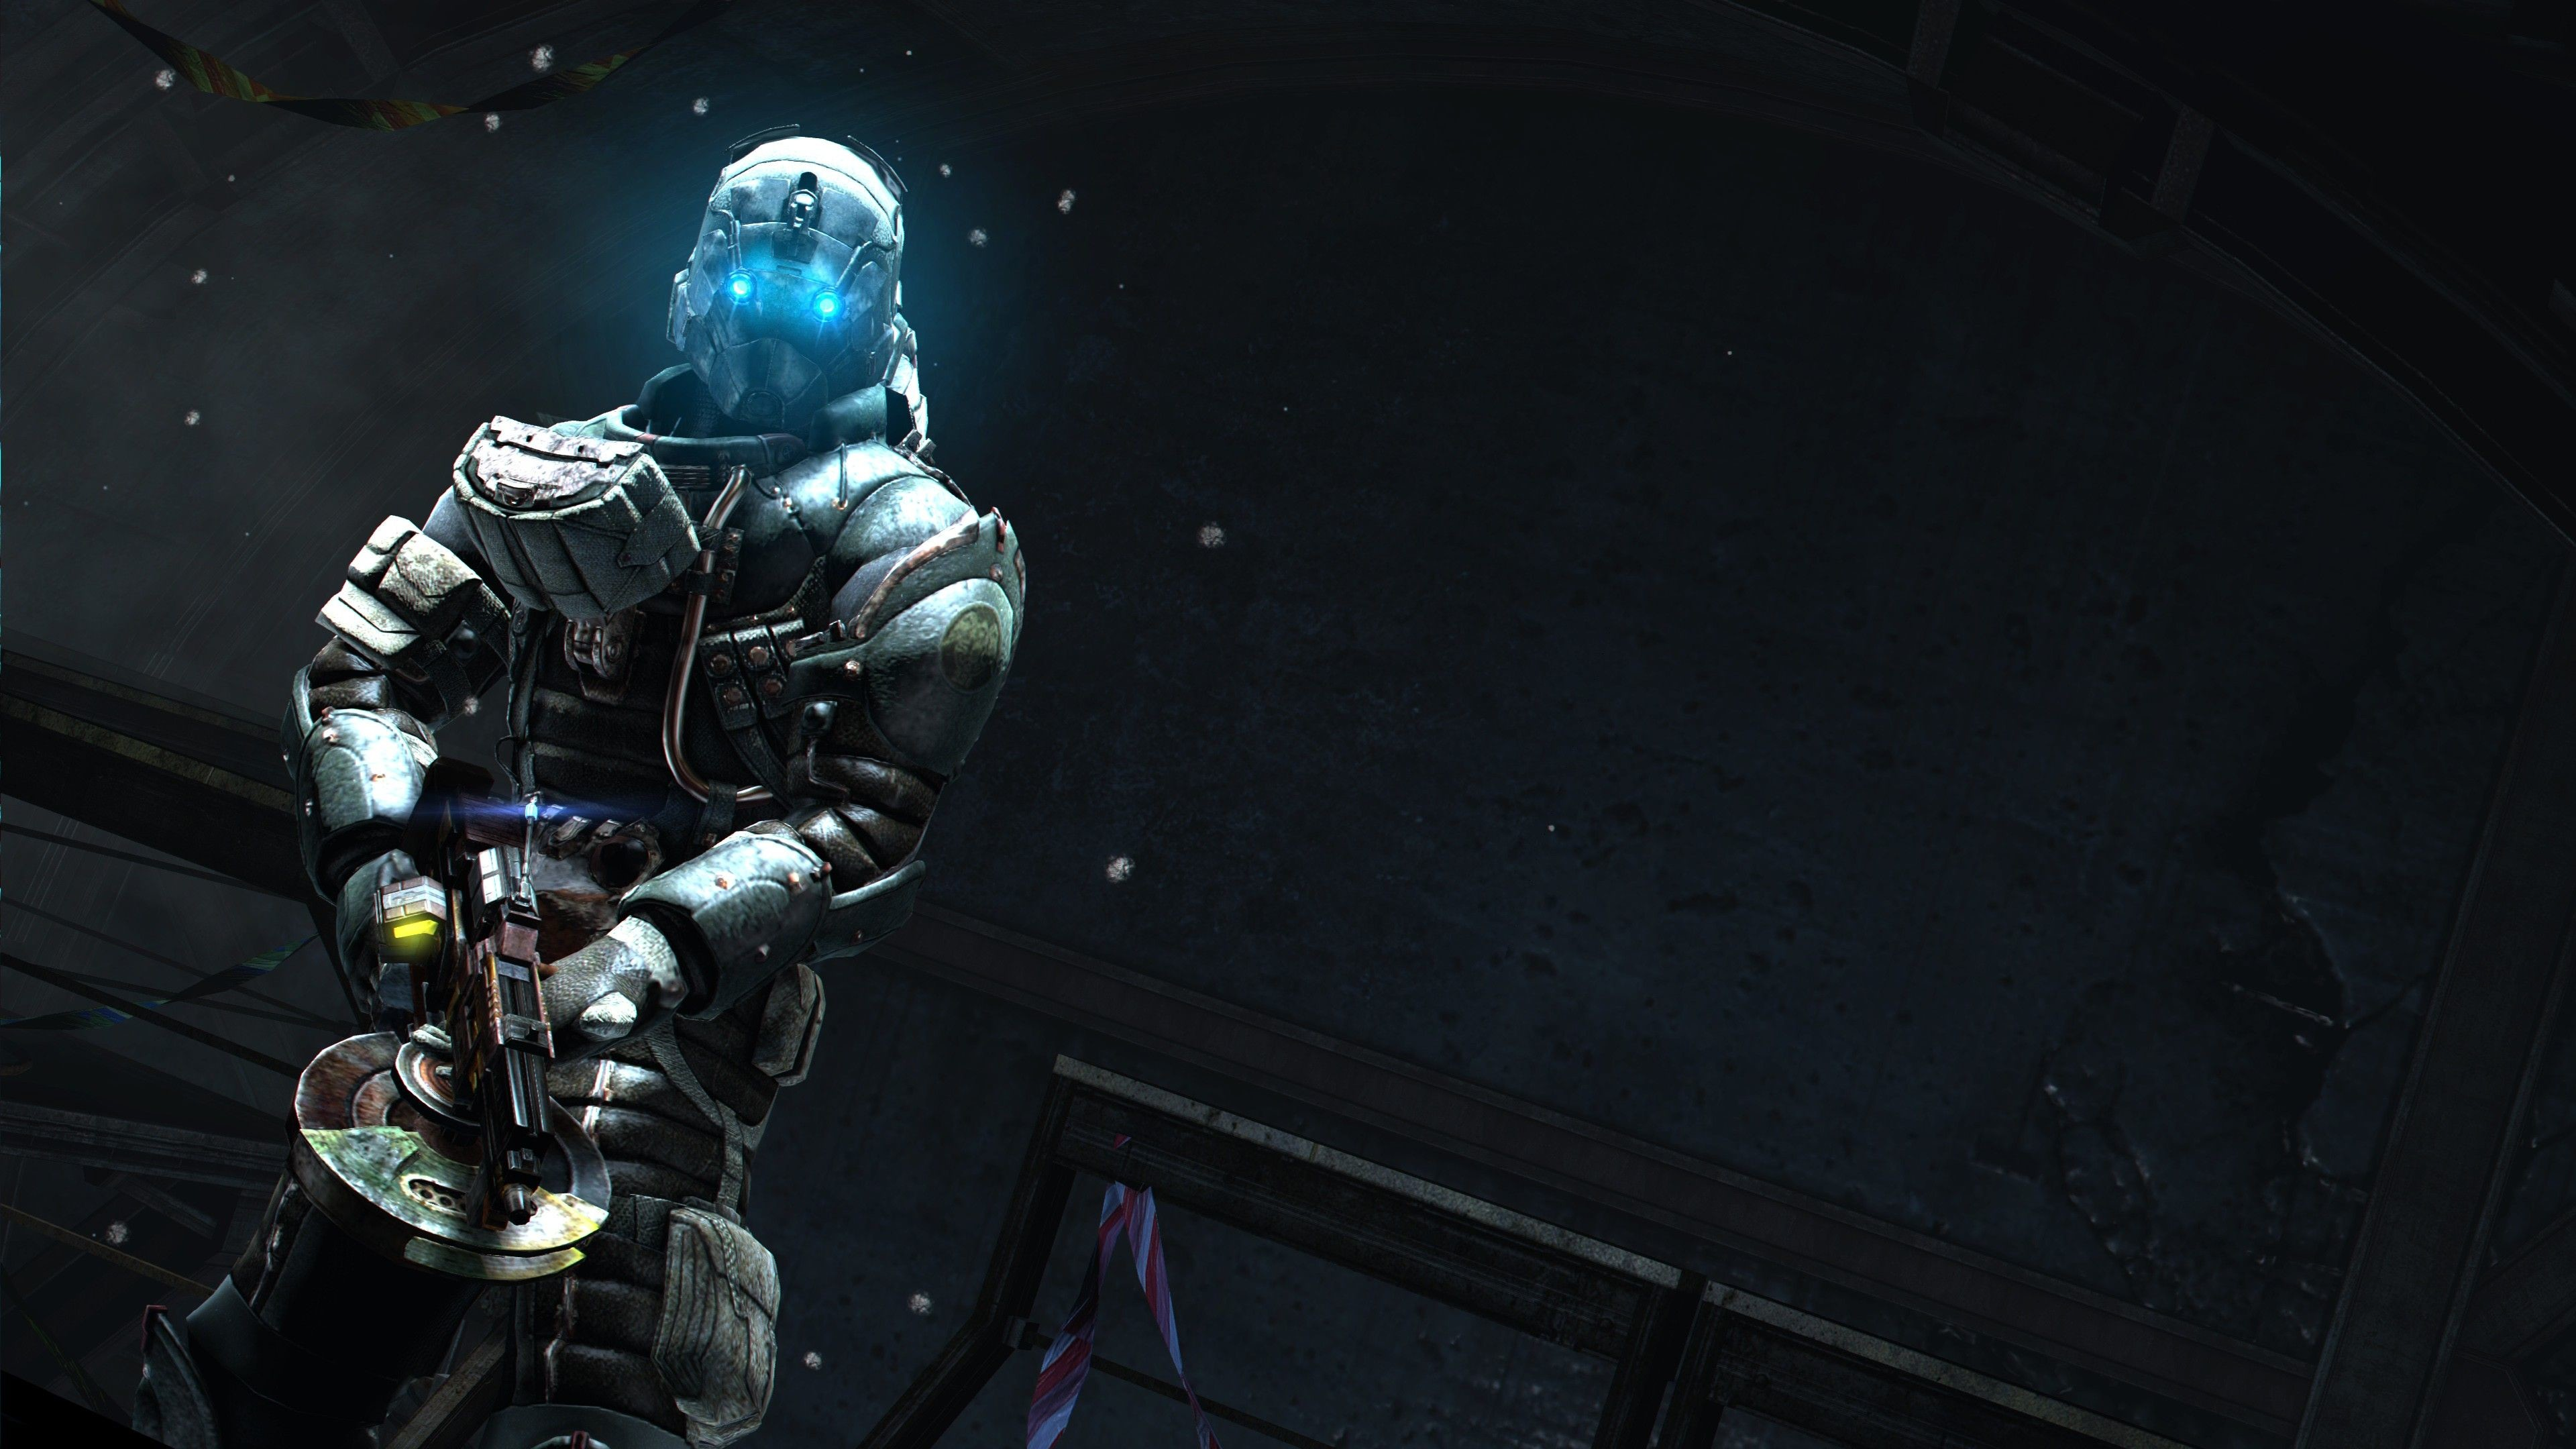 3840x2160 Images Of Dead Space 3